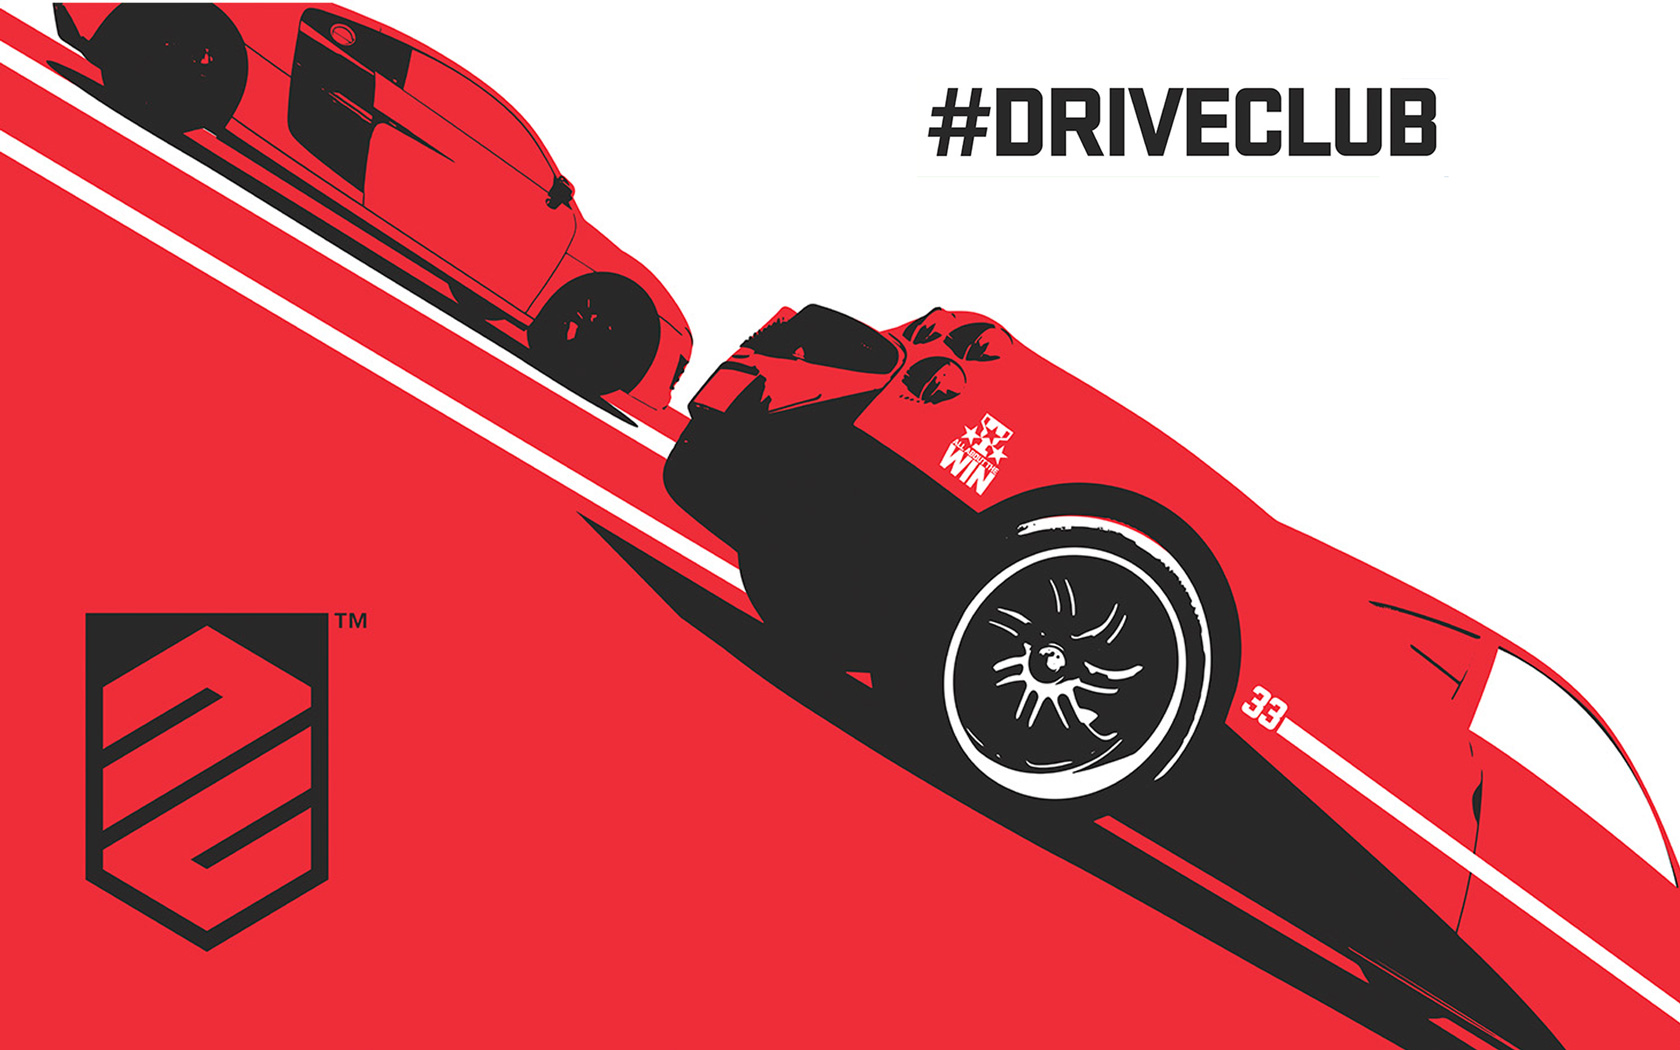 Free Driveclub Wallpaper in 1680x1050